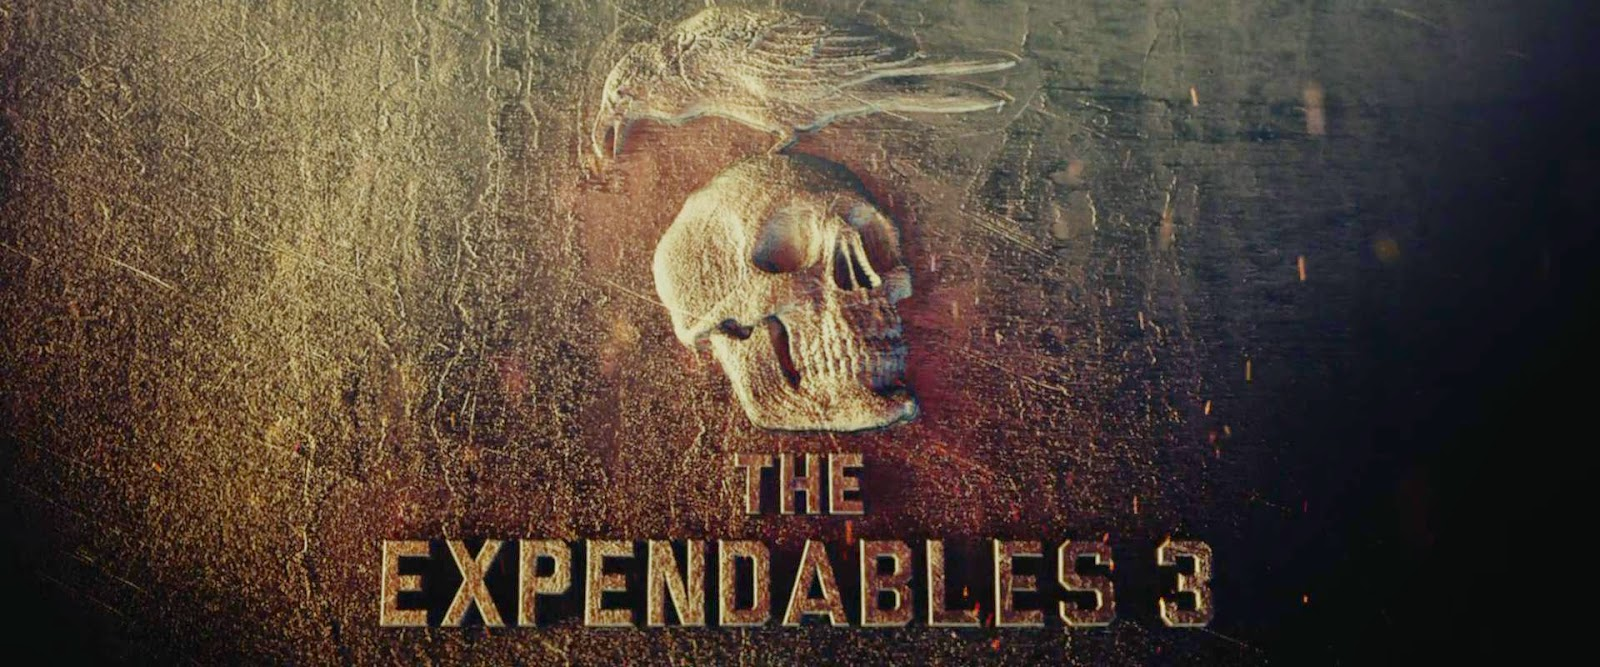 The Expendables S S The Expendables